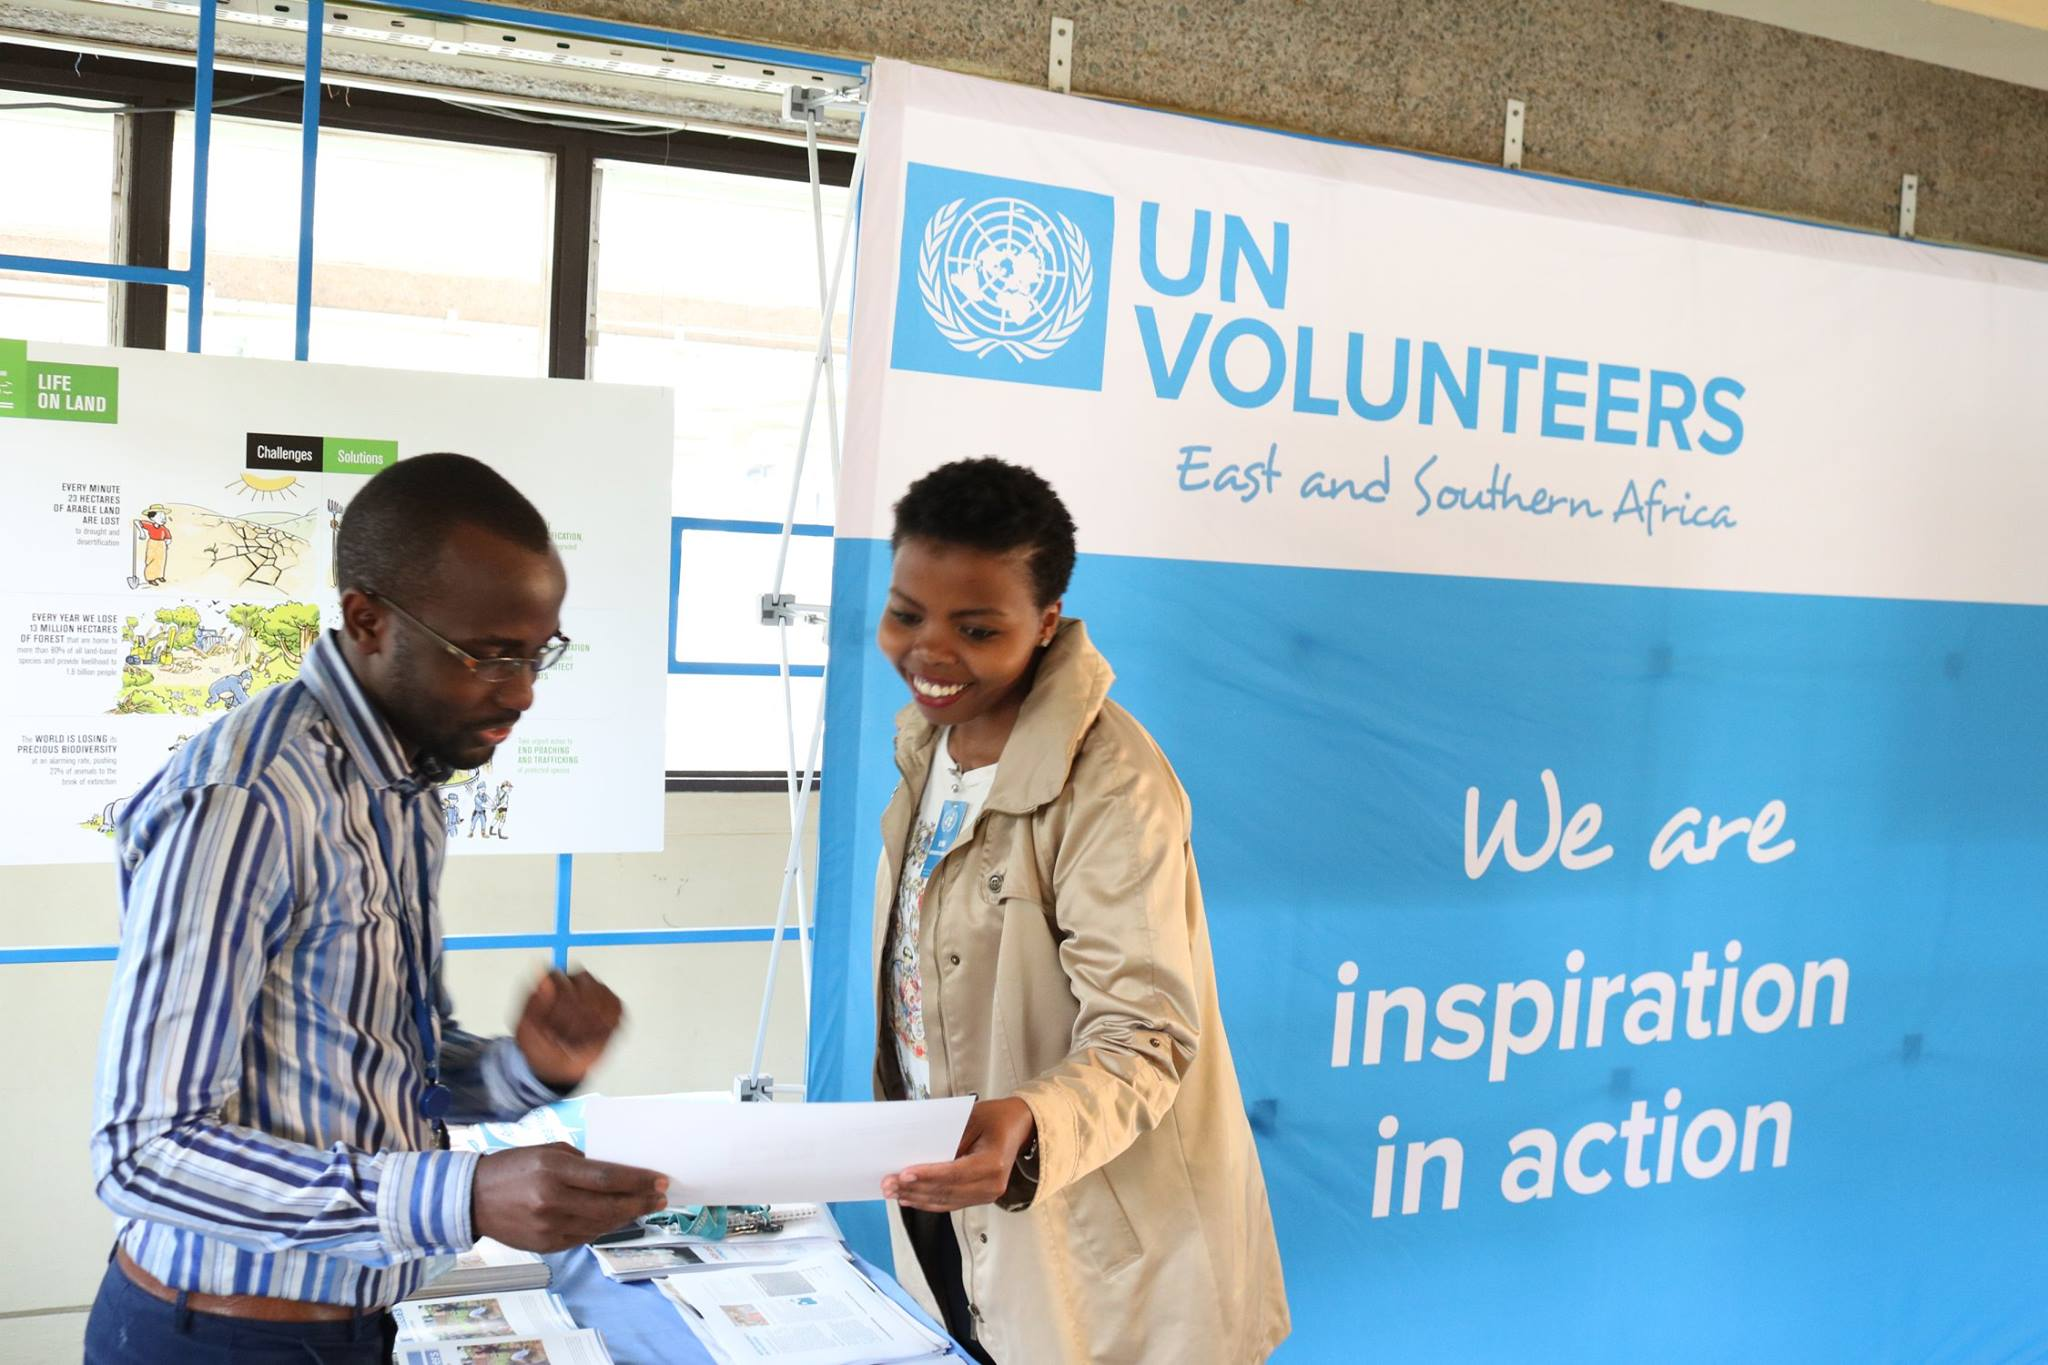 How to Become a UN Volunteer - Opportunities for Youth